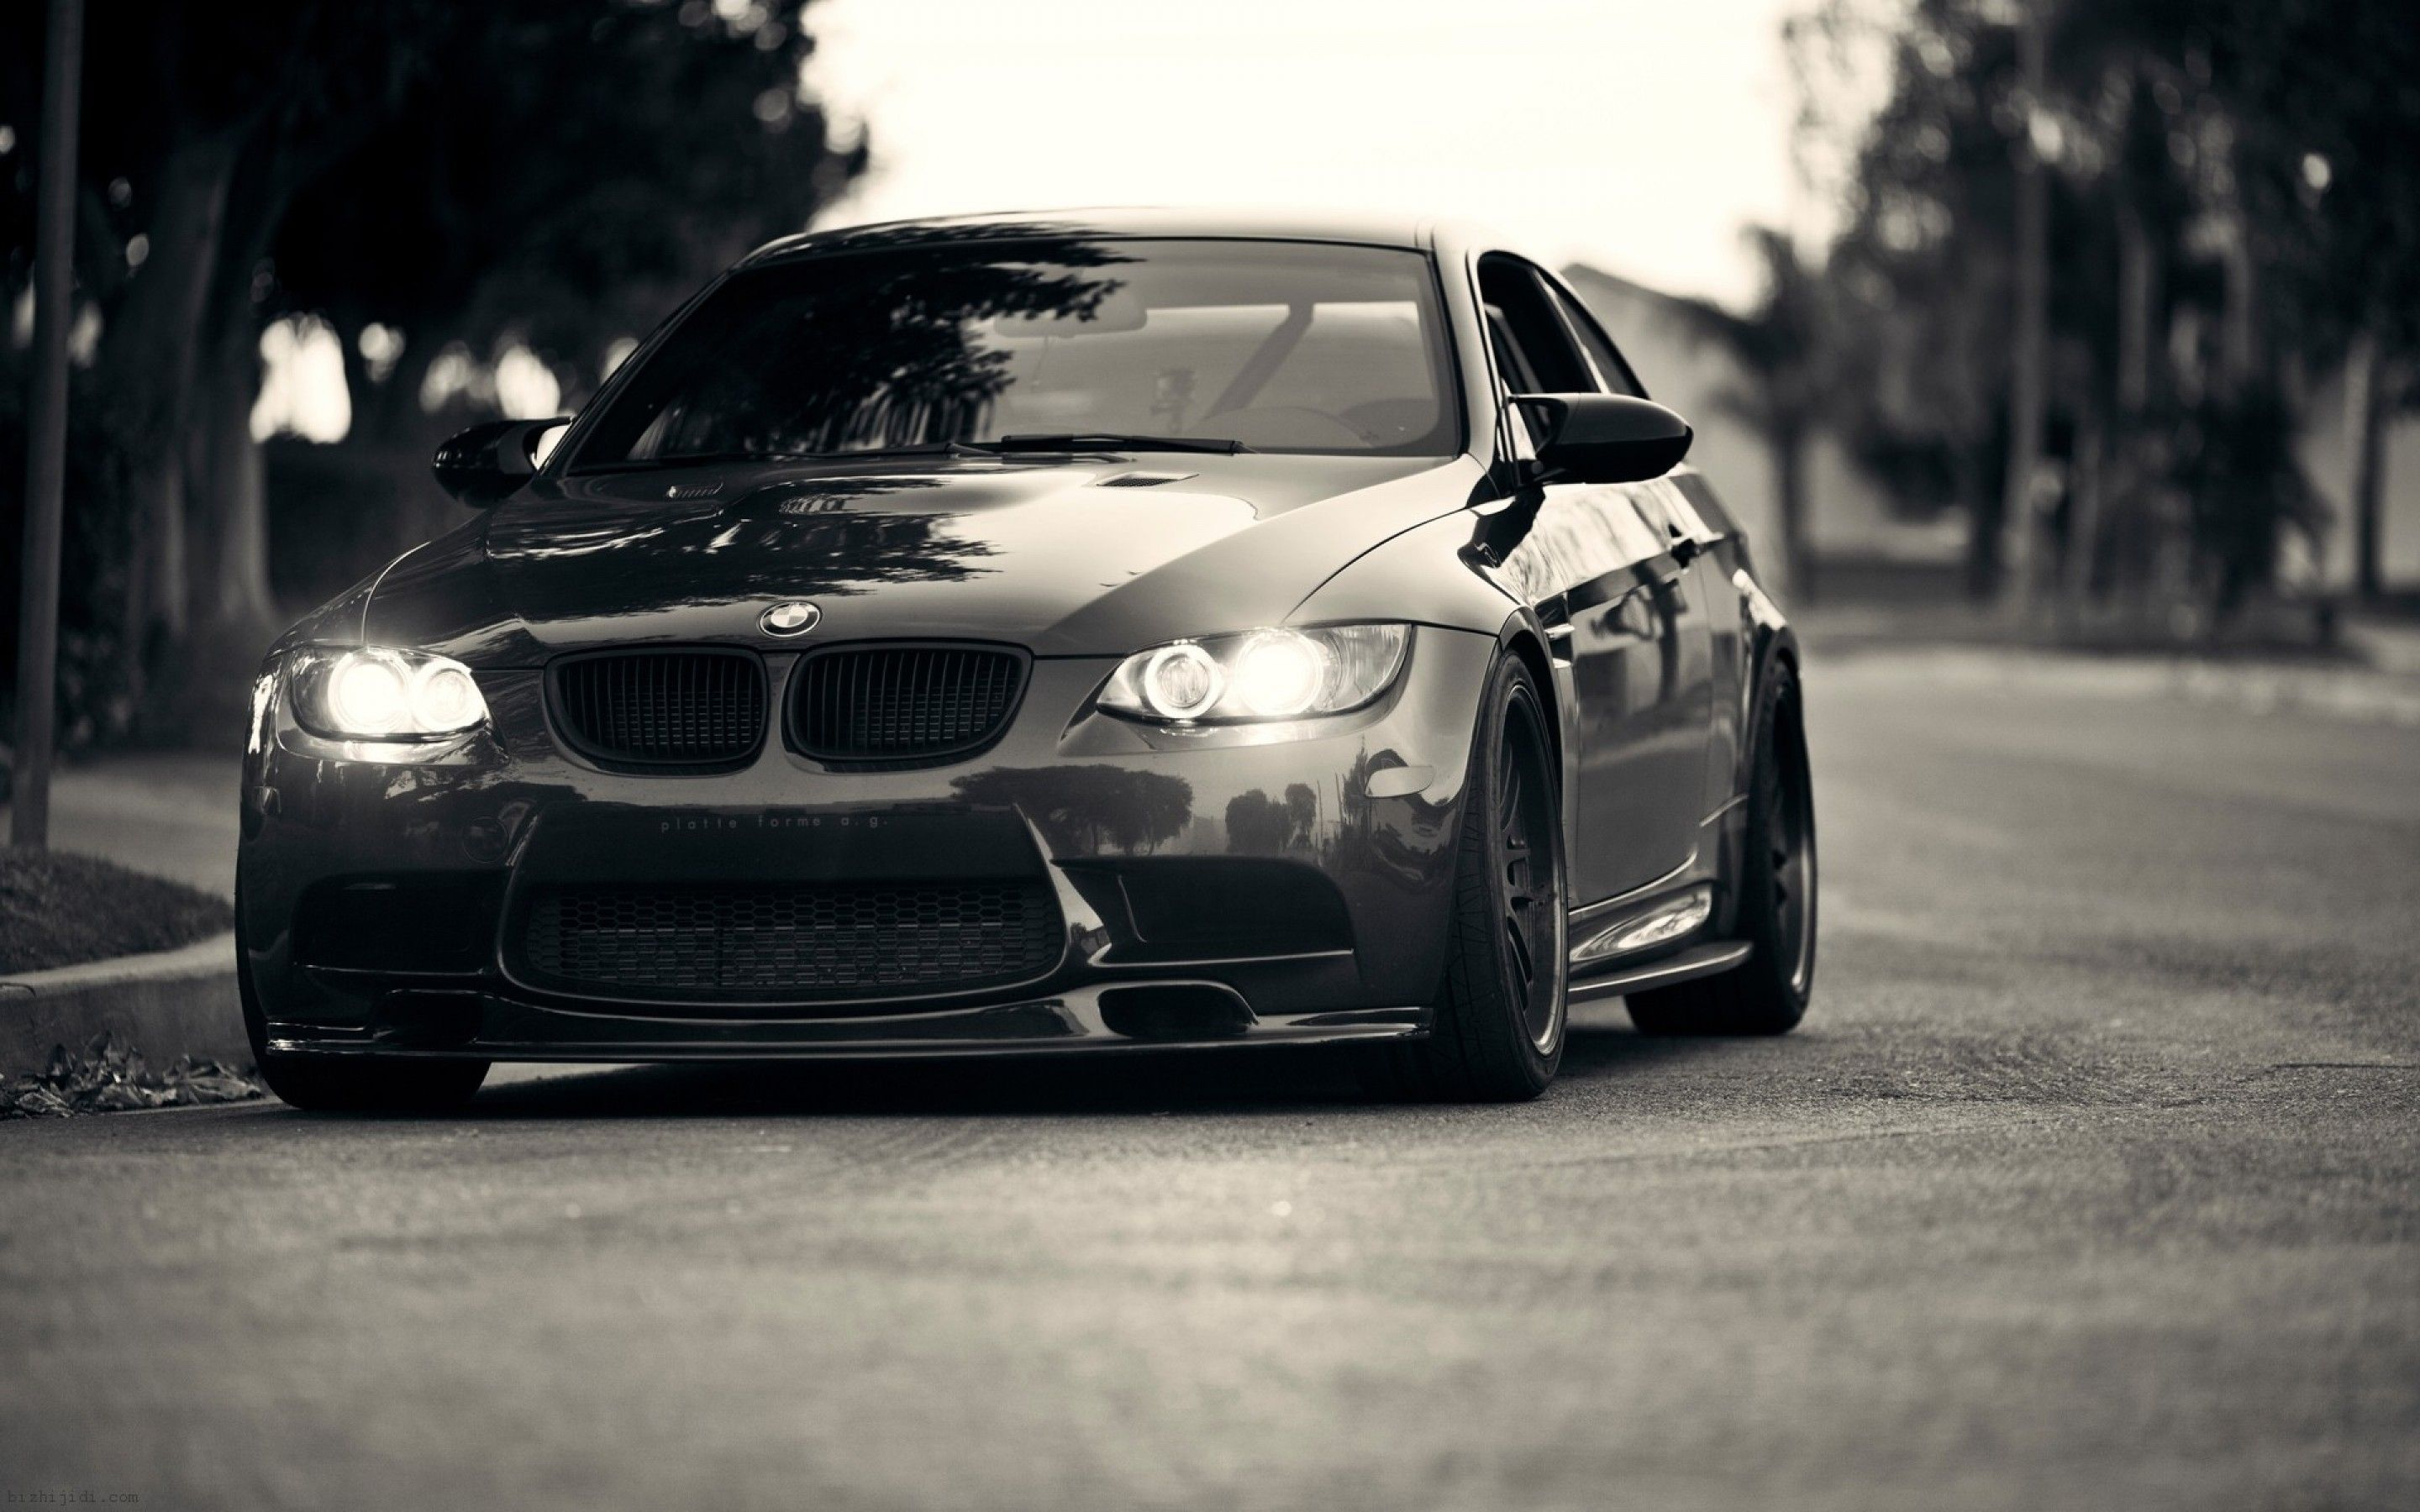 Image for BMW HD Wallpaper Background Full Quality 2080 x